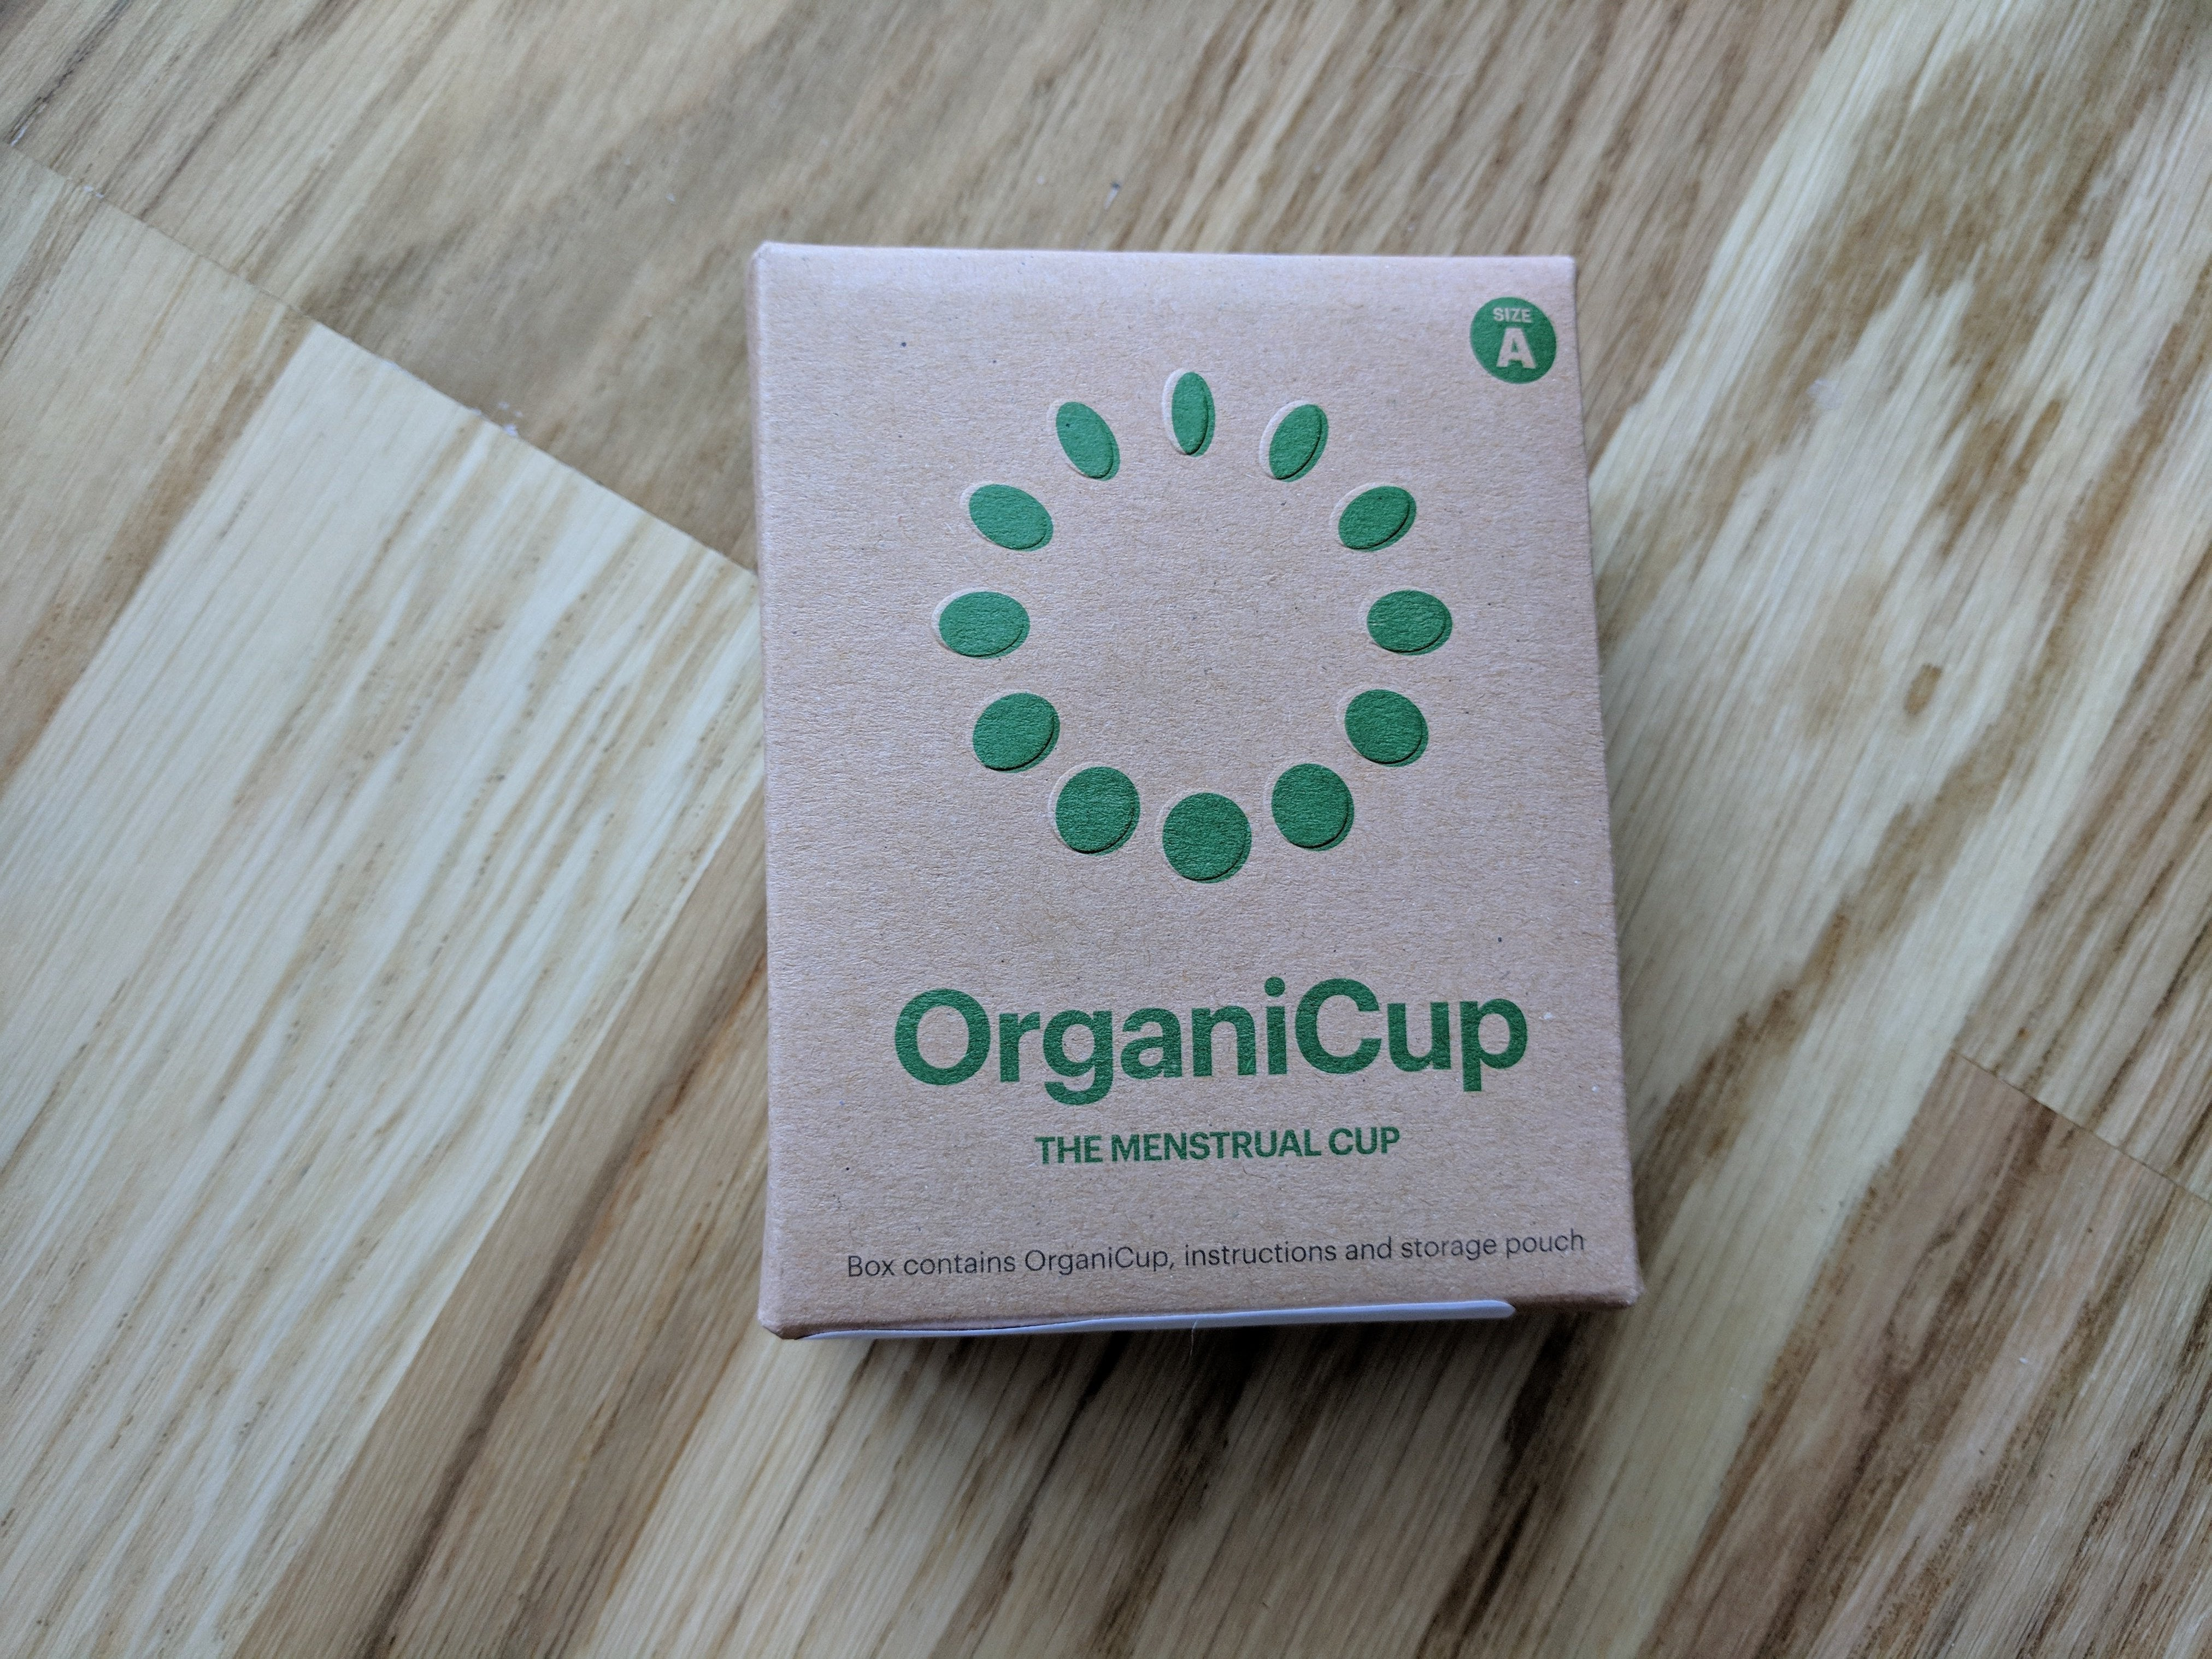 organicup menstrual cup